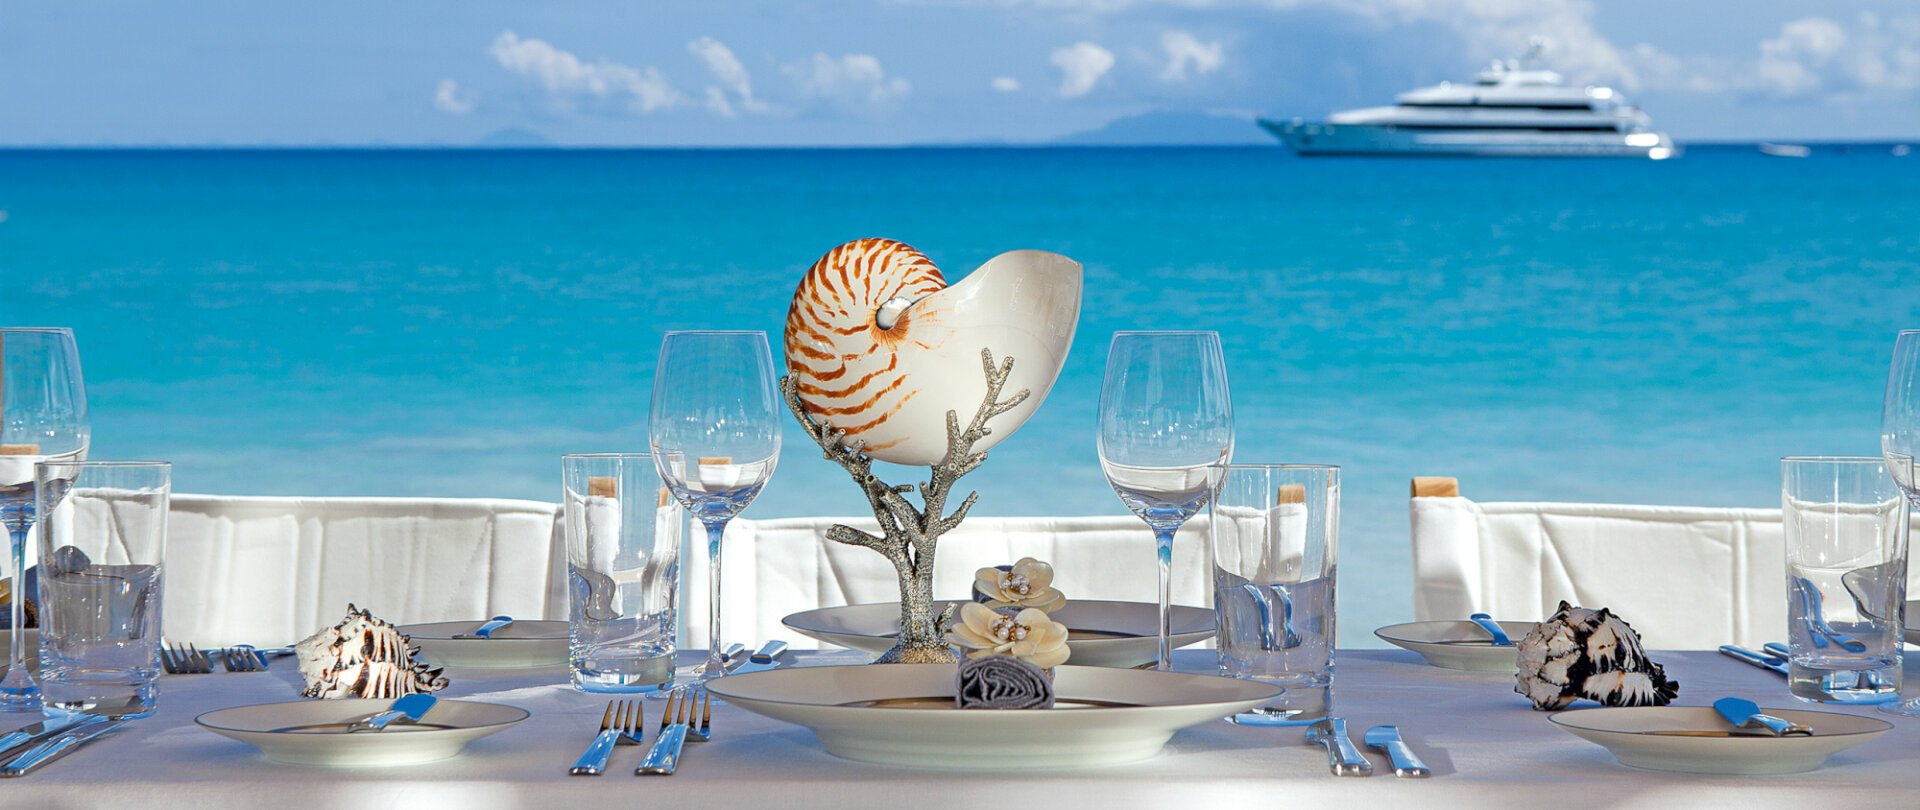 Dining on the beach with view of the charter yacht